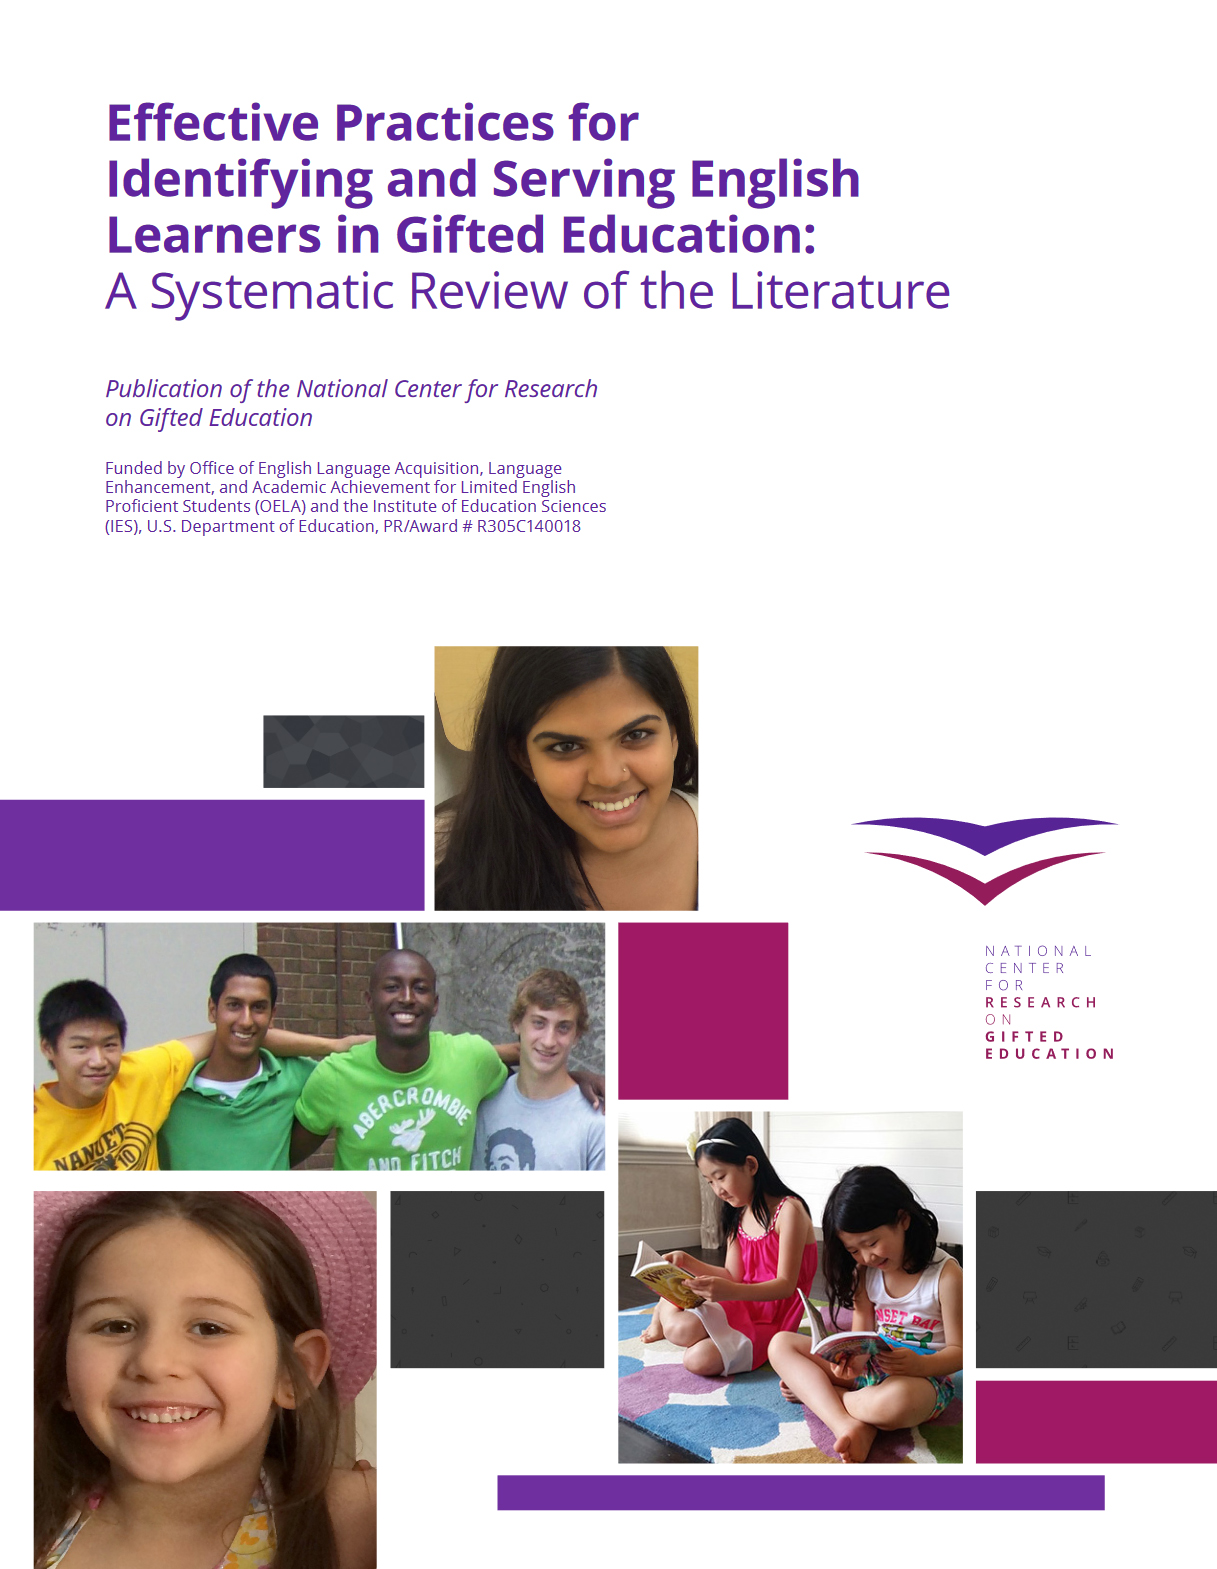 gifted education and funding essay Wish to become an a student argumentative essay is your ticket, and we will share the top winning topic ideas for your perfection argumentative essays are assigned to train your debating abilities this assignment has a great influence on how a student will perform or give a public speech later.